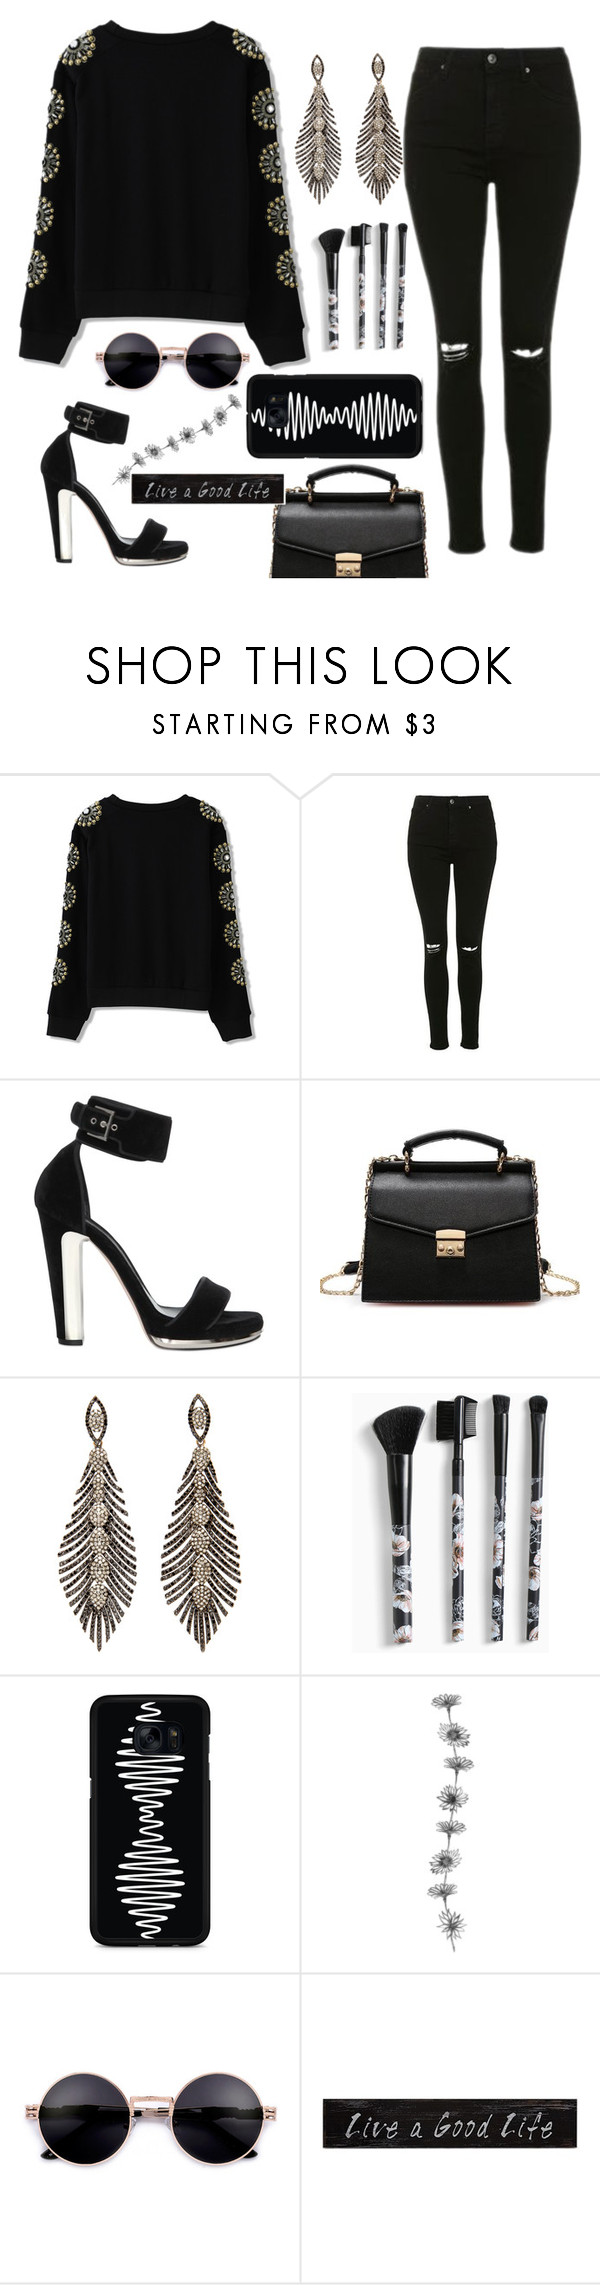 """Uma boa vida"" by thais-santana-1 ❤ liked on Polyvore featuring Topshop, Alexander McQueen, Torrid, Samsung and 3R Studios"